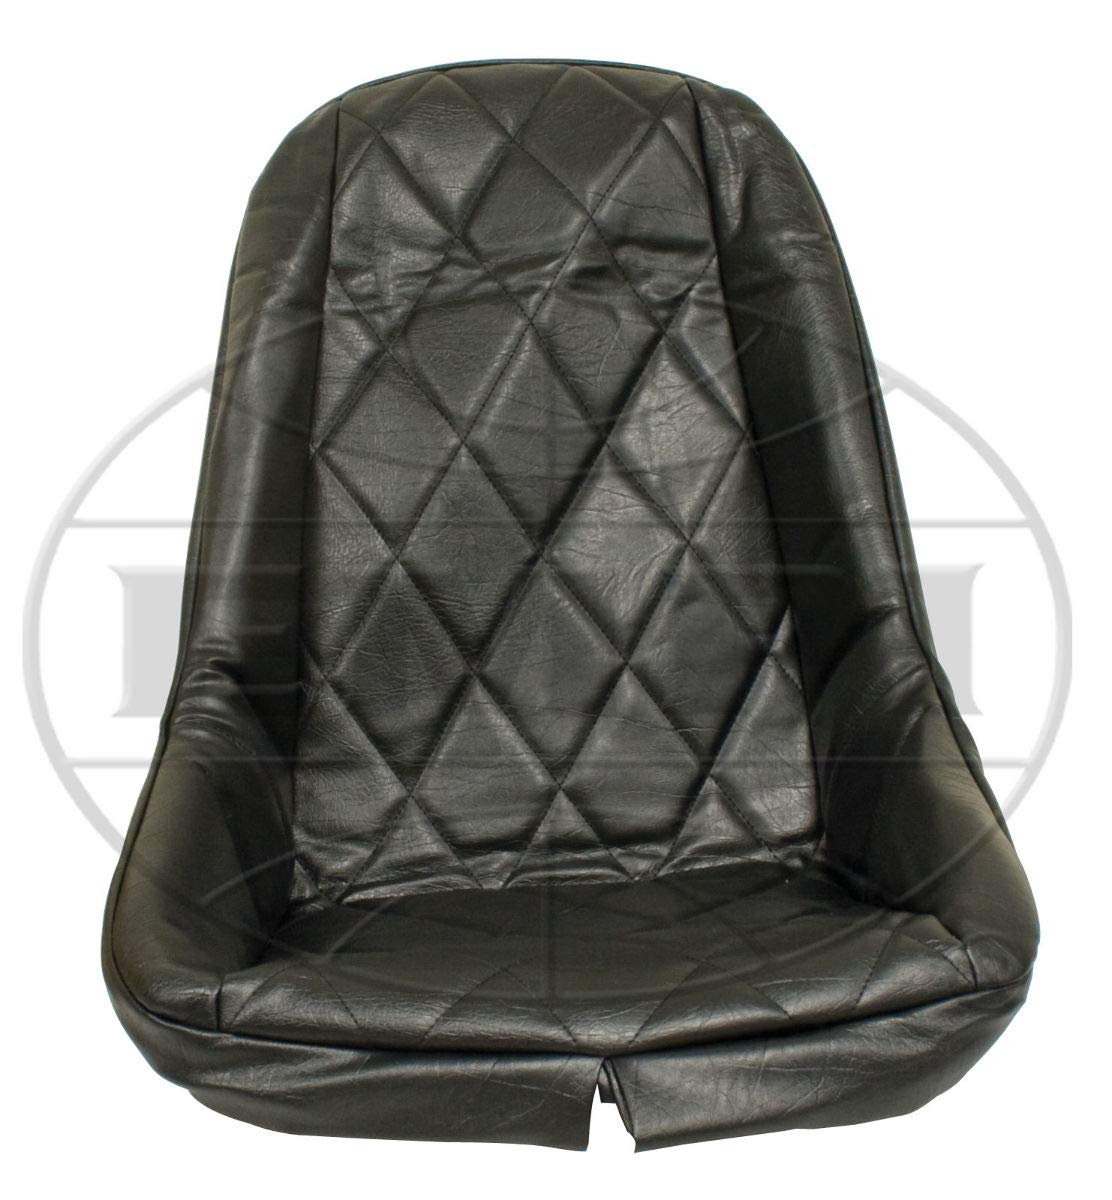 Empi 3880 Black Vinyl Low Back Bucket Seat Cover  Dune Buggy Vw Baja Bug,  Each